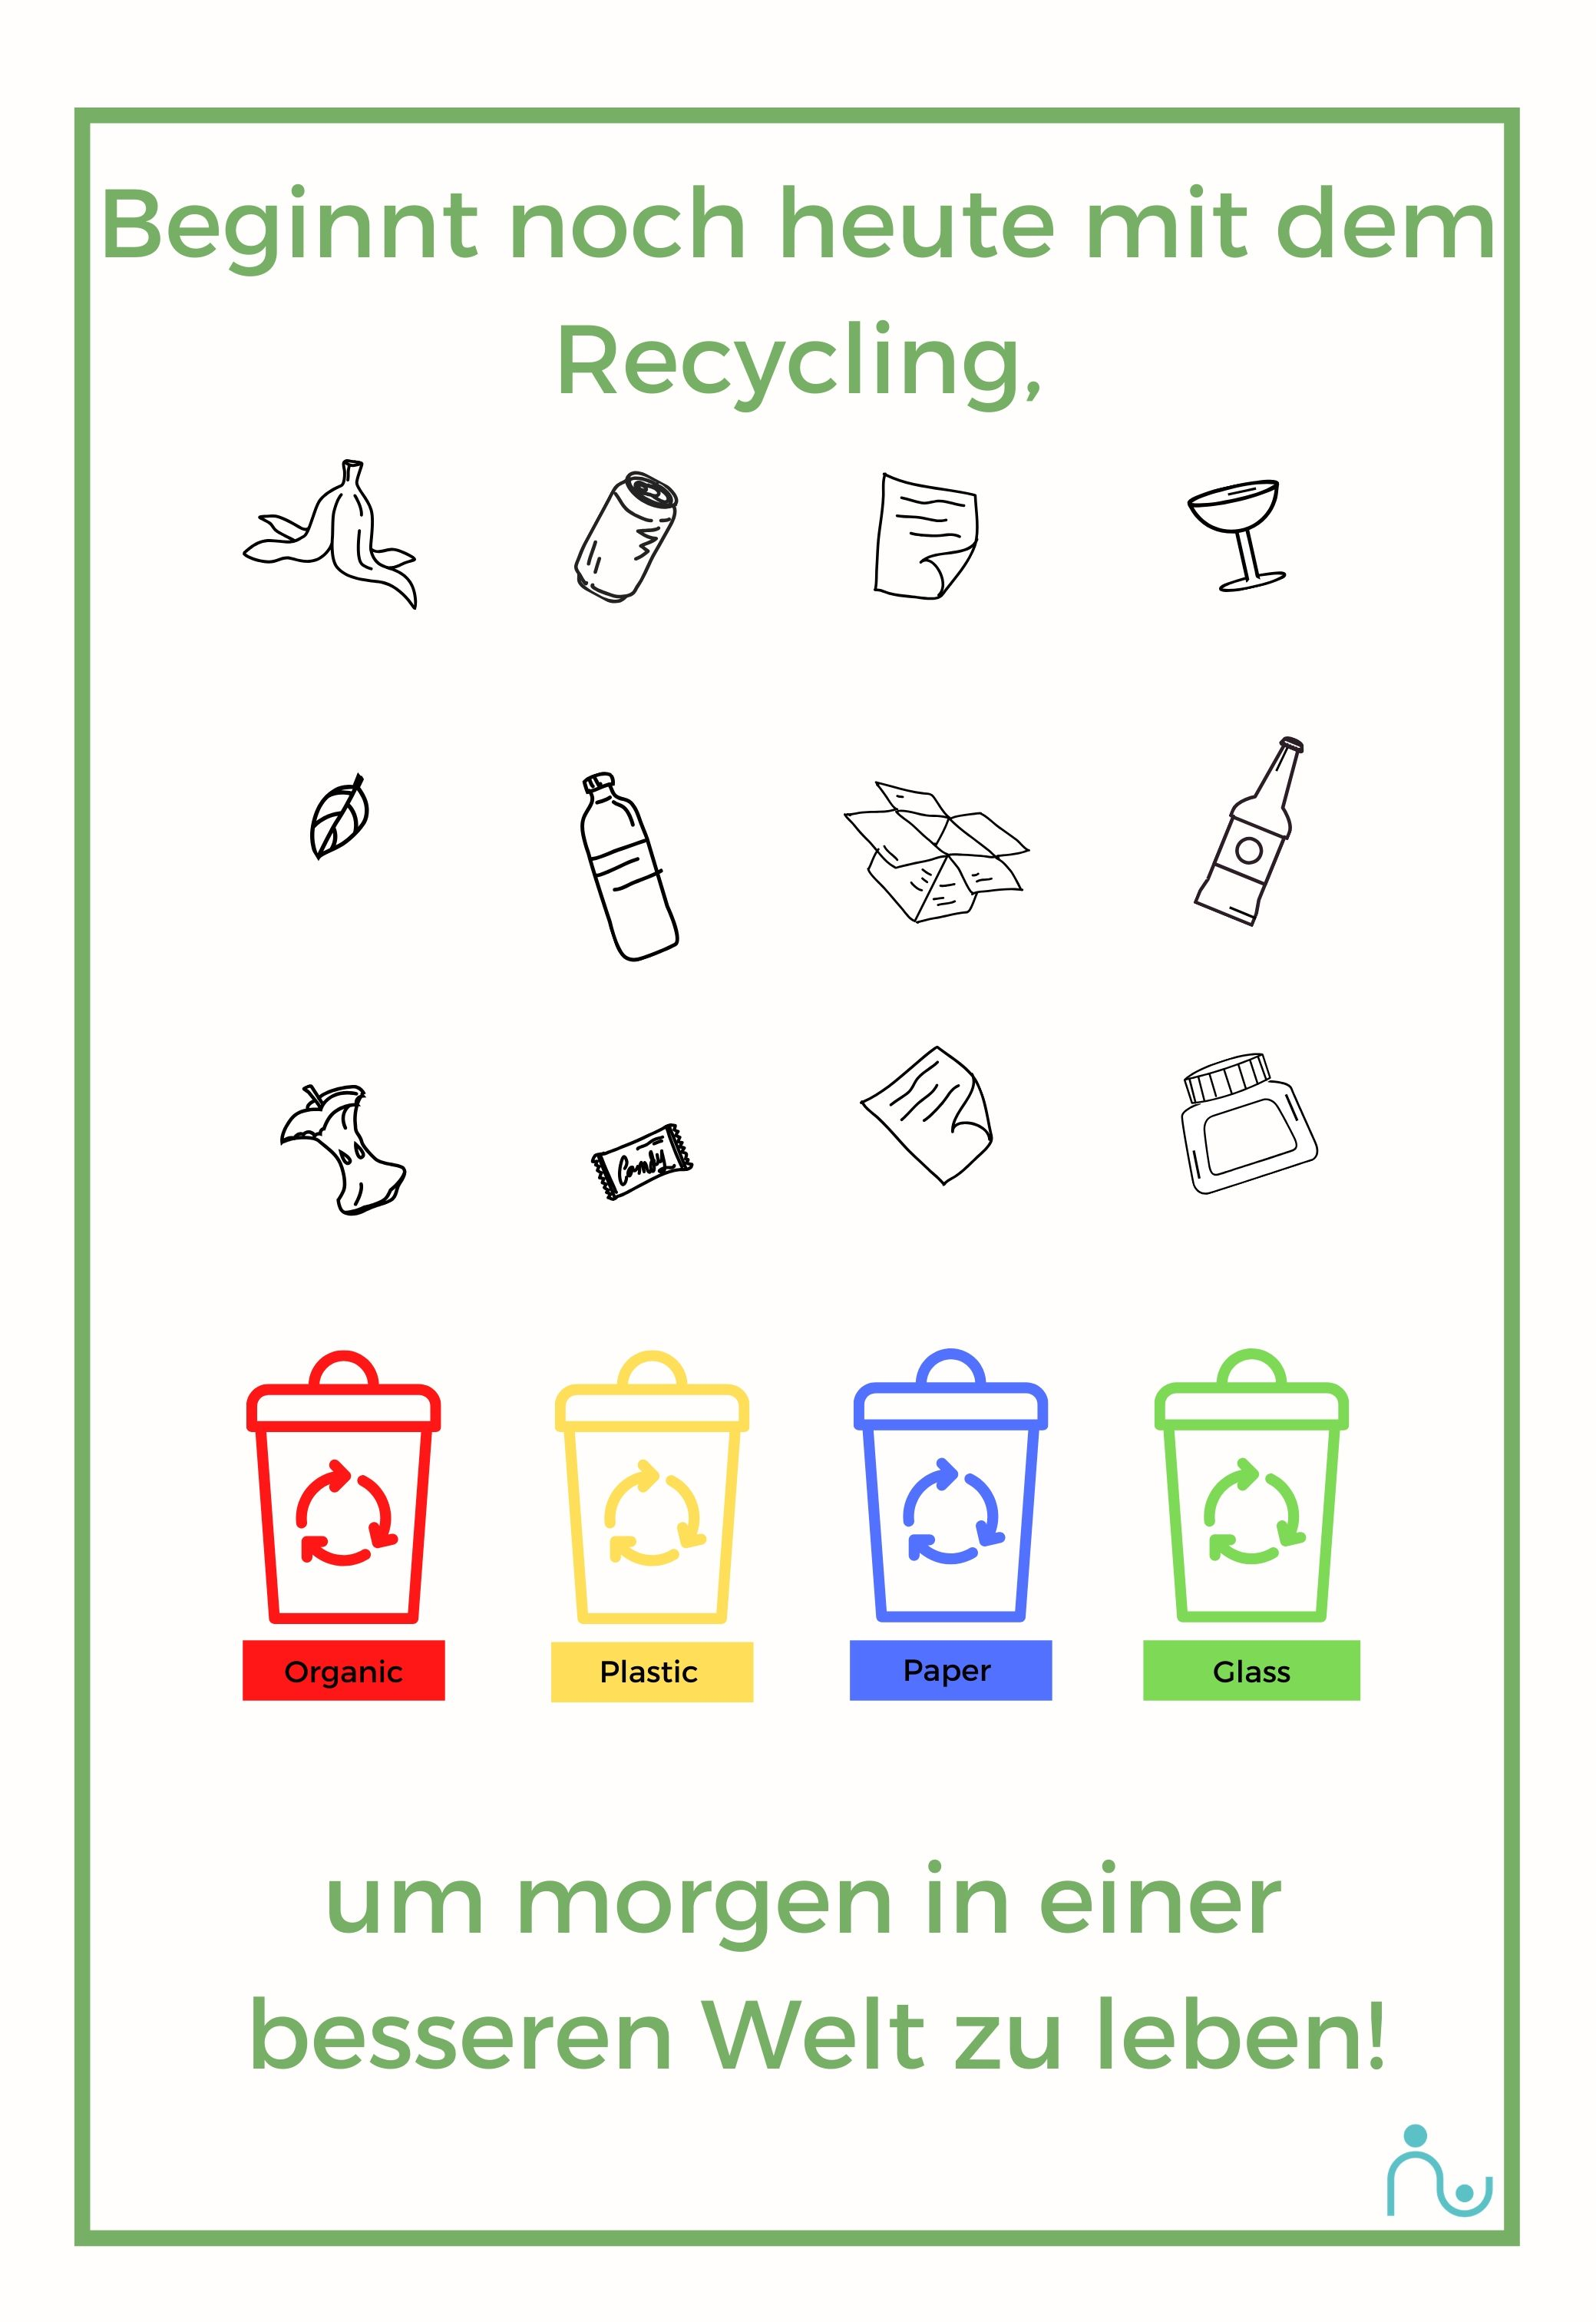 Den Kindern Recycling beibringen